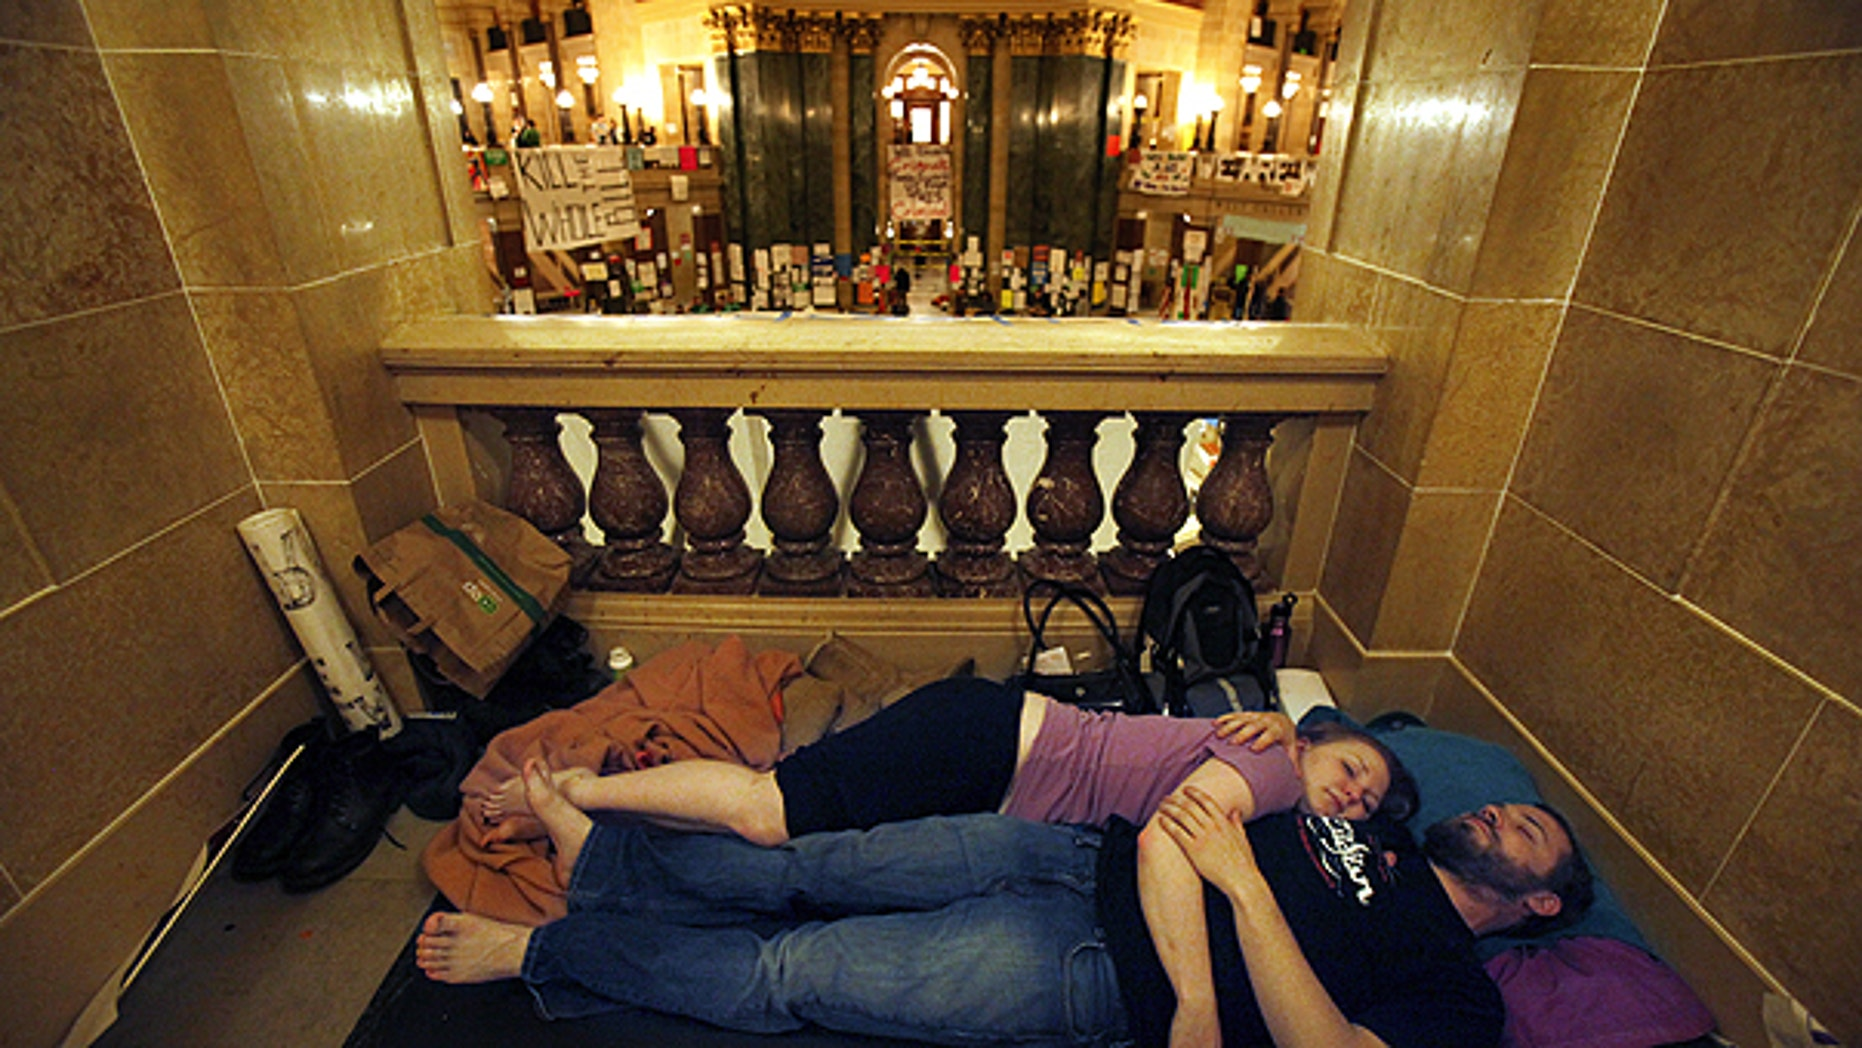 Feb. 23: Opponents to Gov. Scott Walker's bill to eliminate collective bargaining rights for many state workers sleep in the Capitol in Madison, Wis., after a day of protesting.